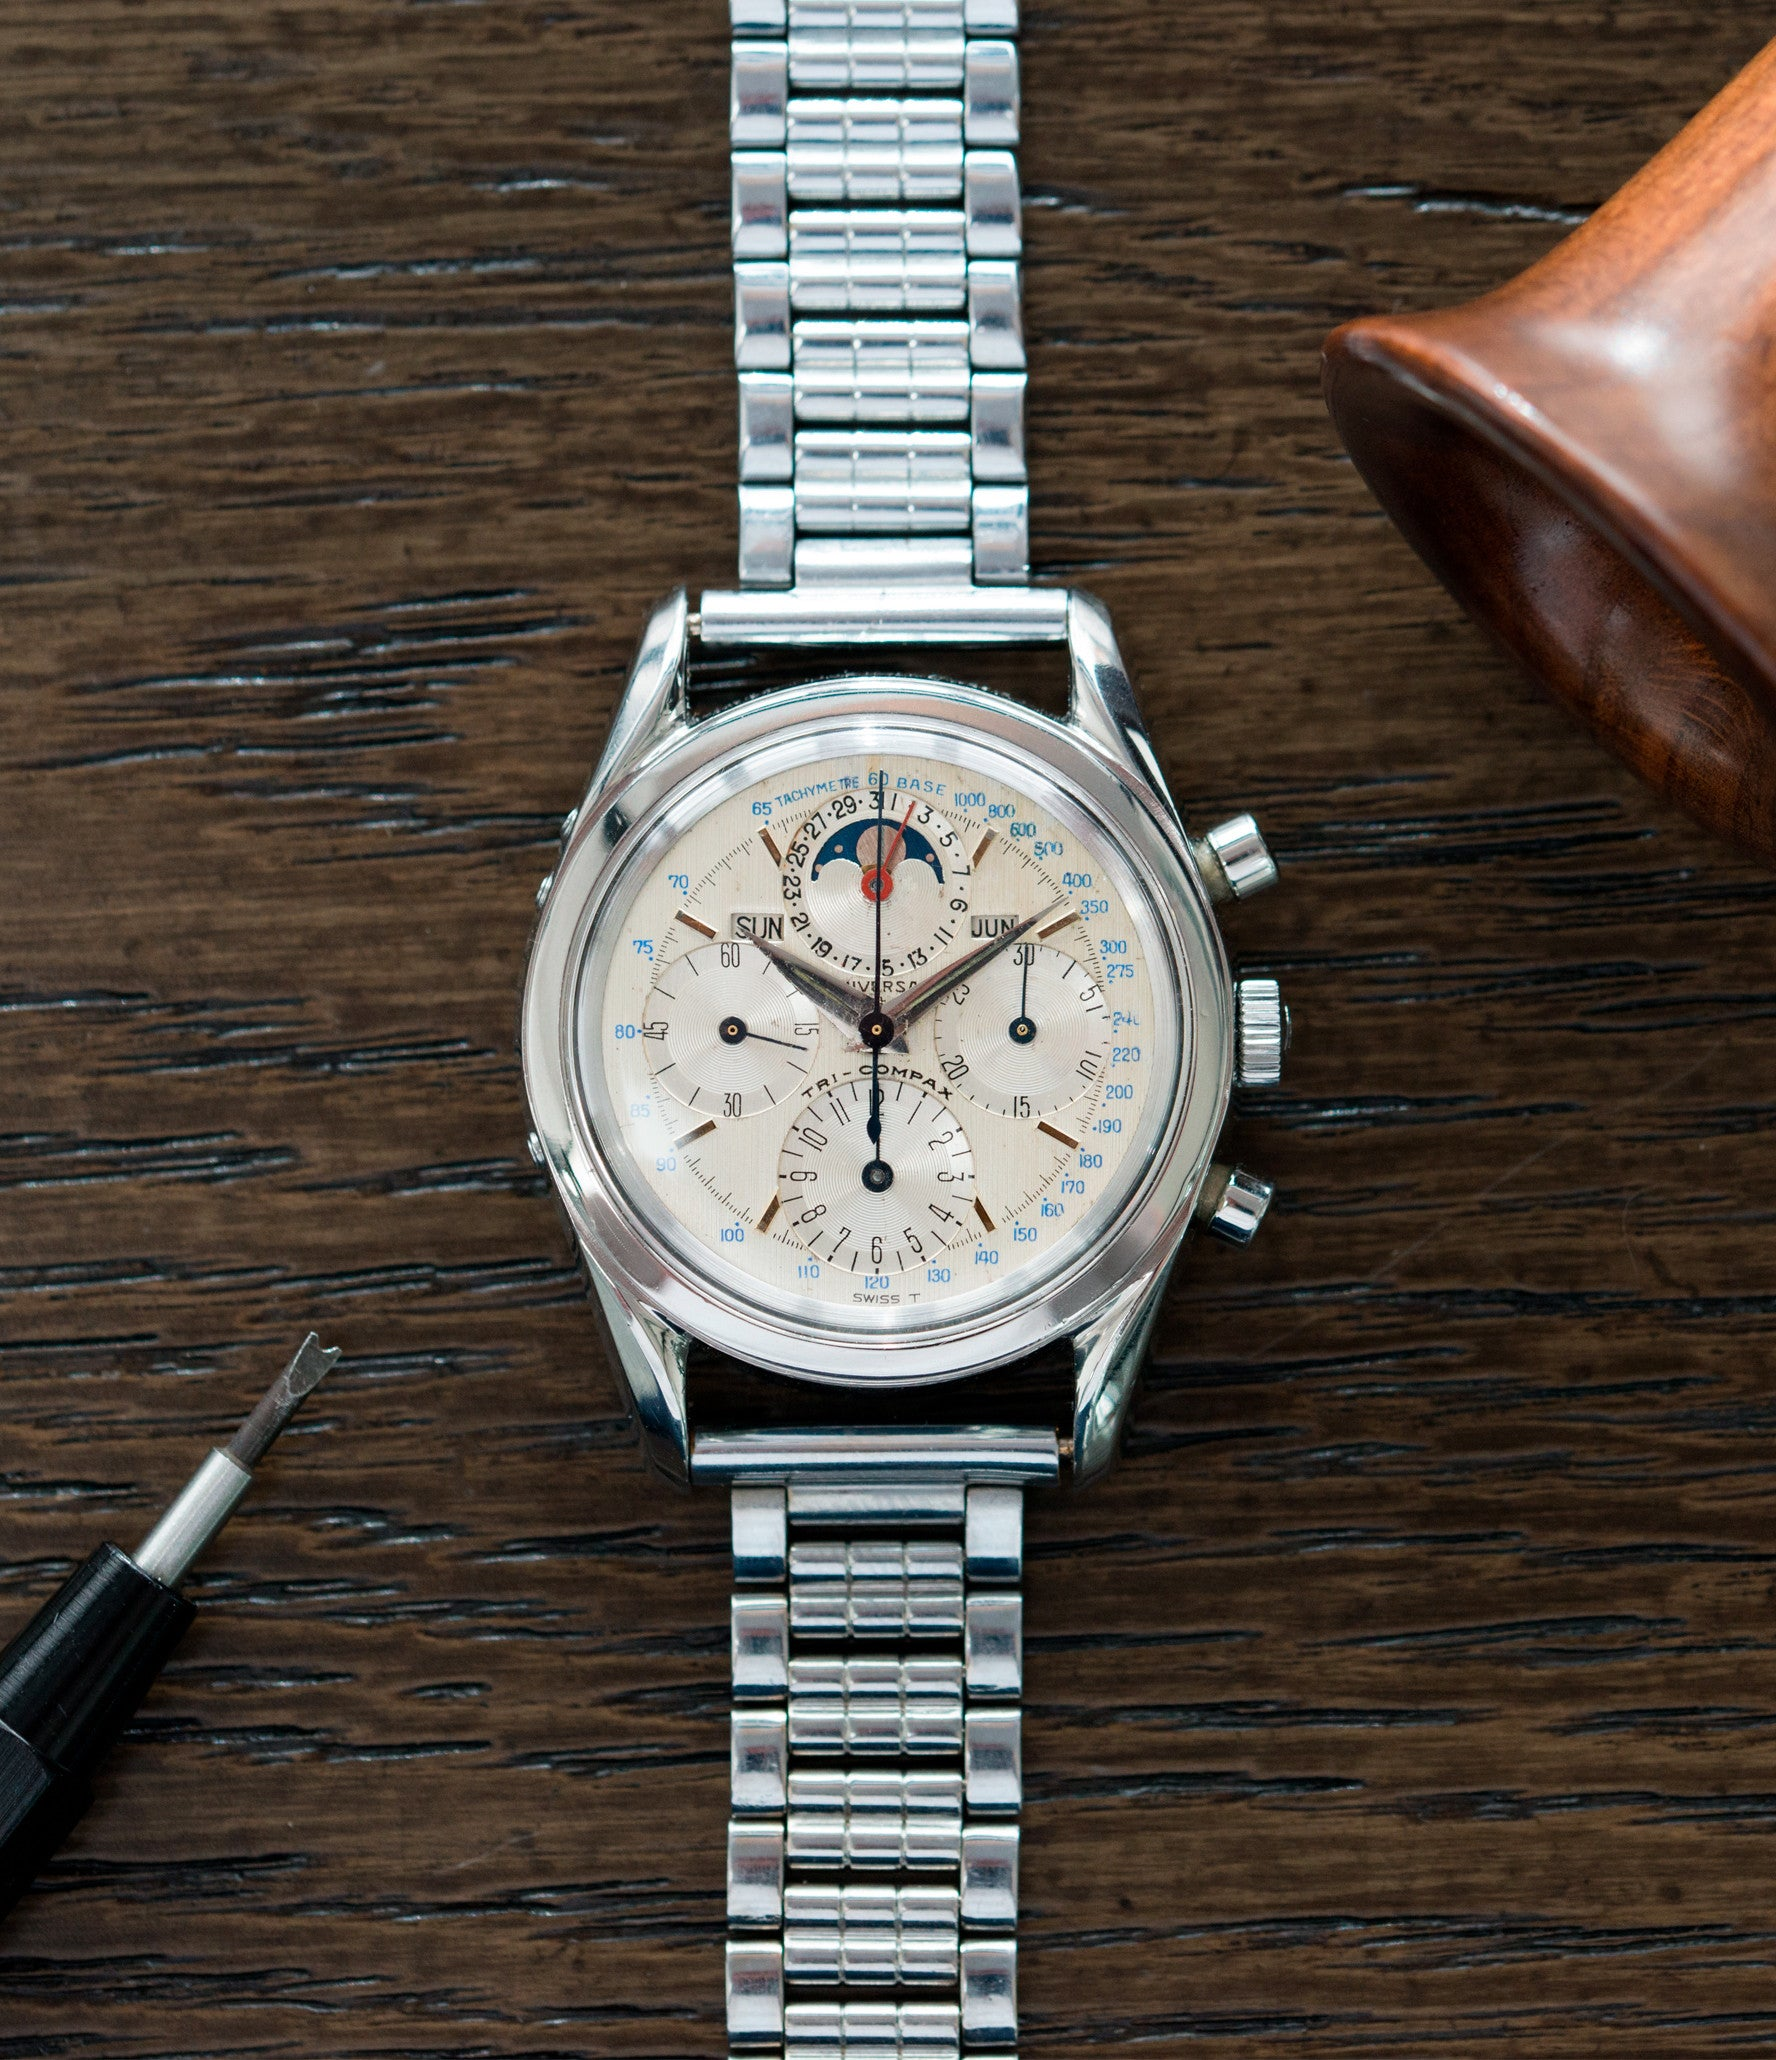 vintage dress watch Universal Geneve 222100/2 Tri-Compax Triple Calendar Moonphase steel chronograph watch for sale online at A Collected Man London rare vintage watch specialist